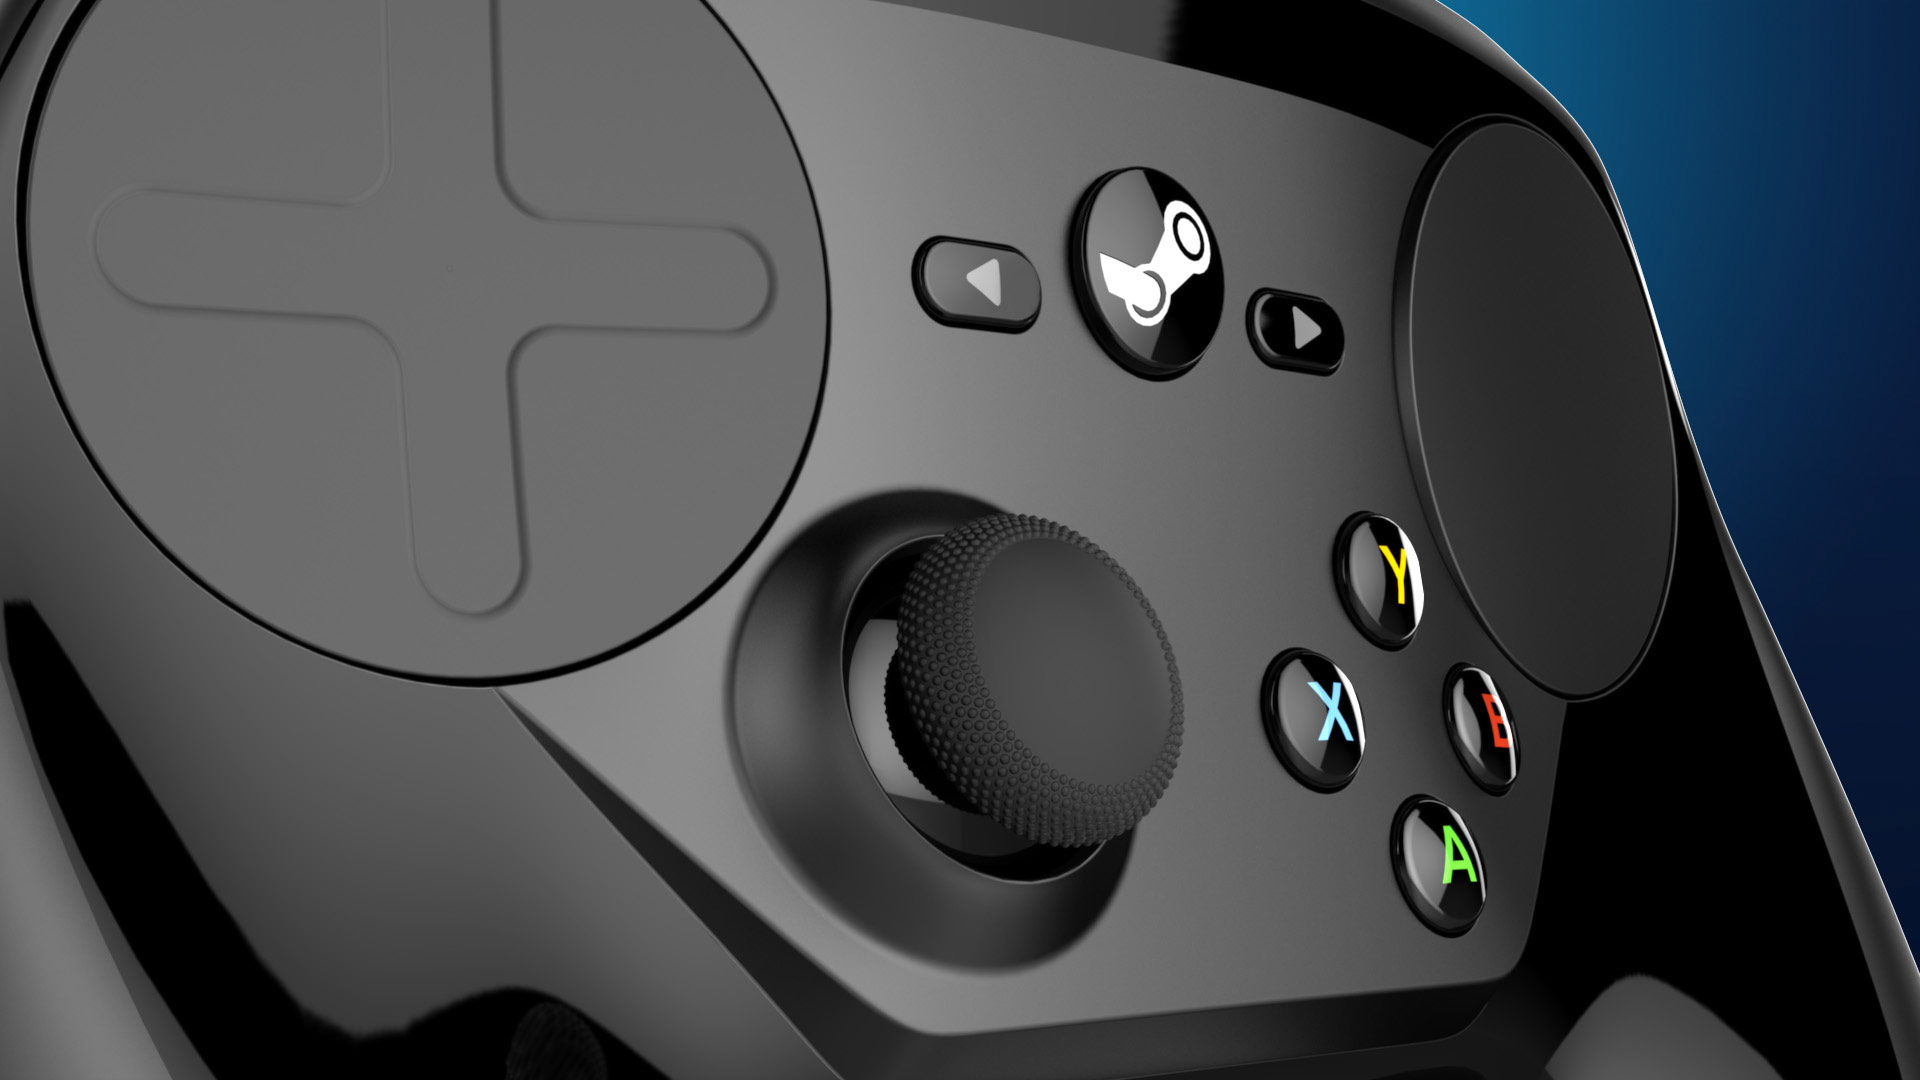 Steam Black Friday: 13,000 games on sale, $5 Steam Controllers